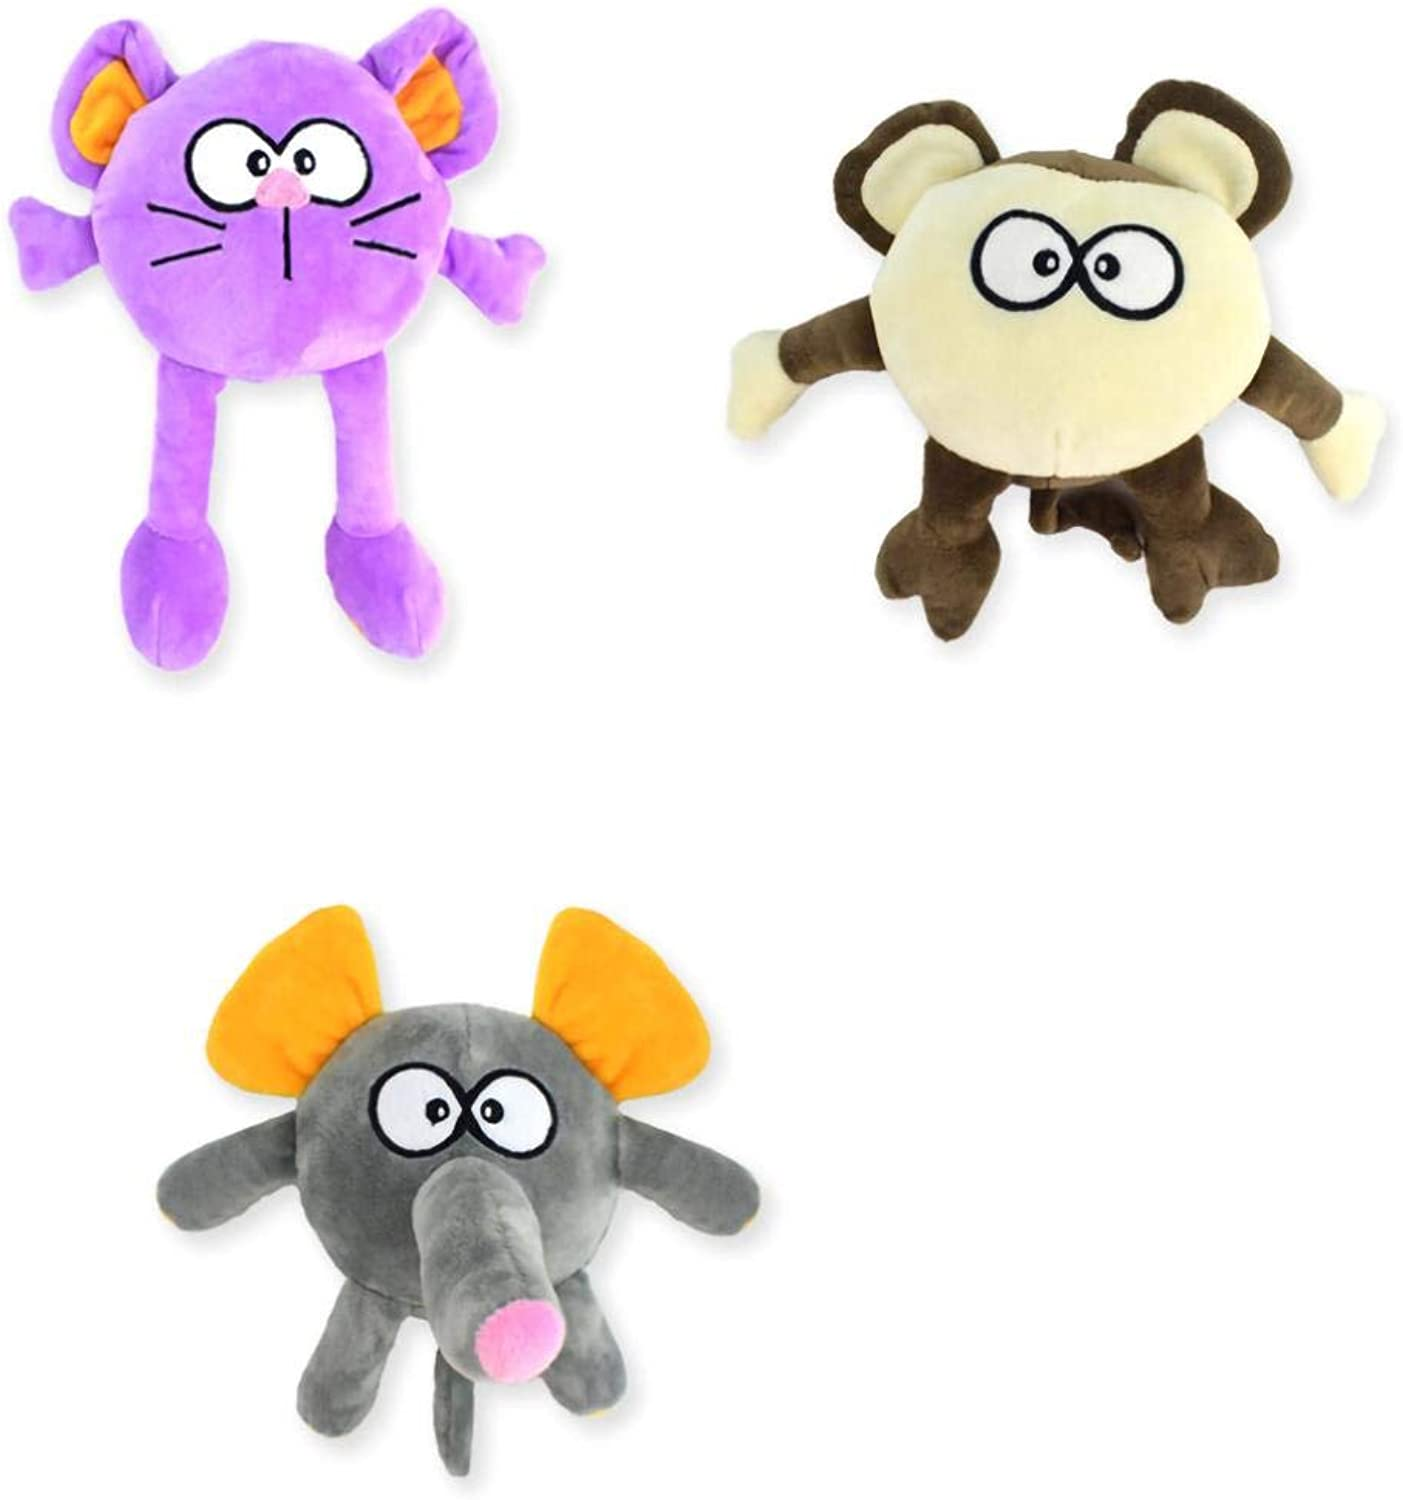 Aahaox Dog Plush Molar Stick Toy Puzzle Safety Environmental Predection Pet Sound Biteproof Toy (3 Pieces)